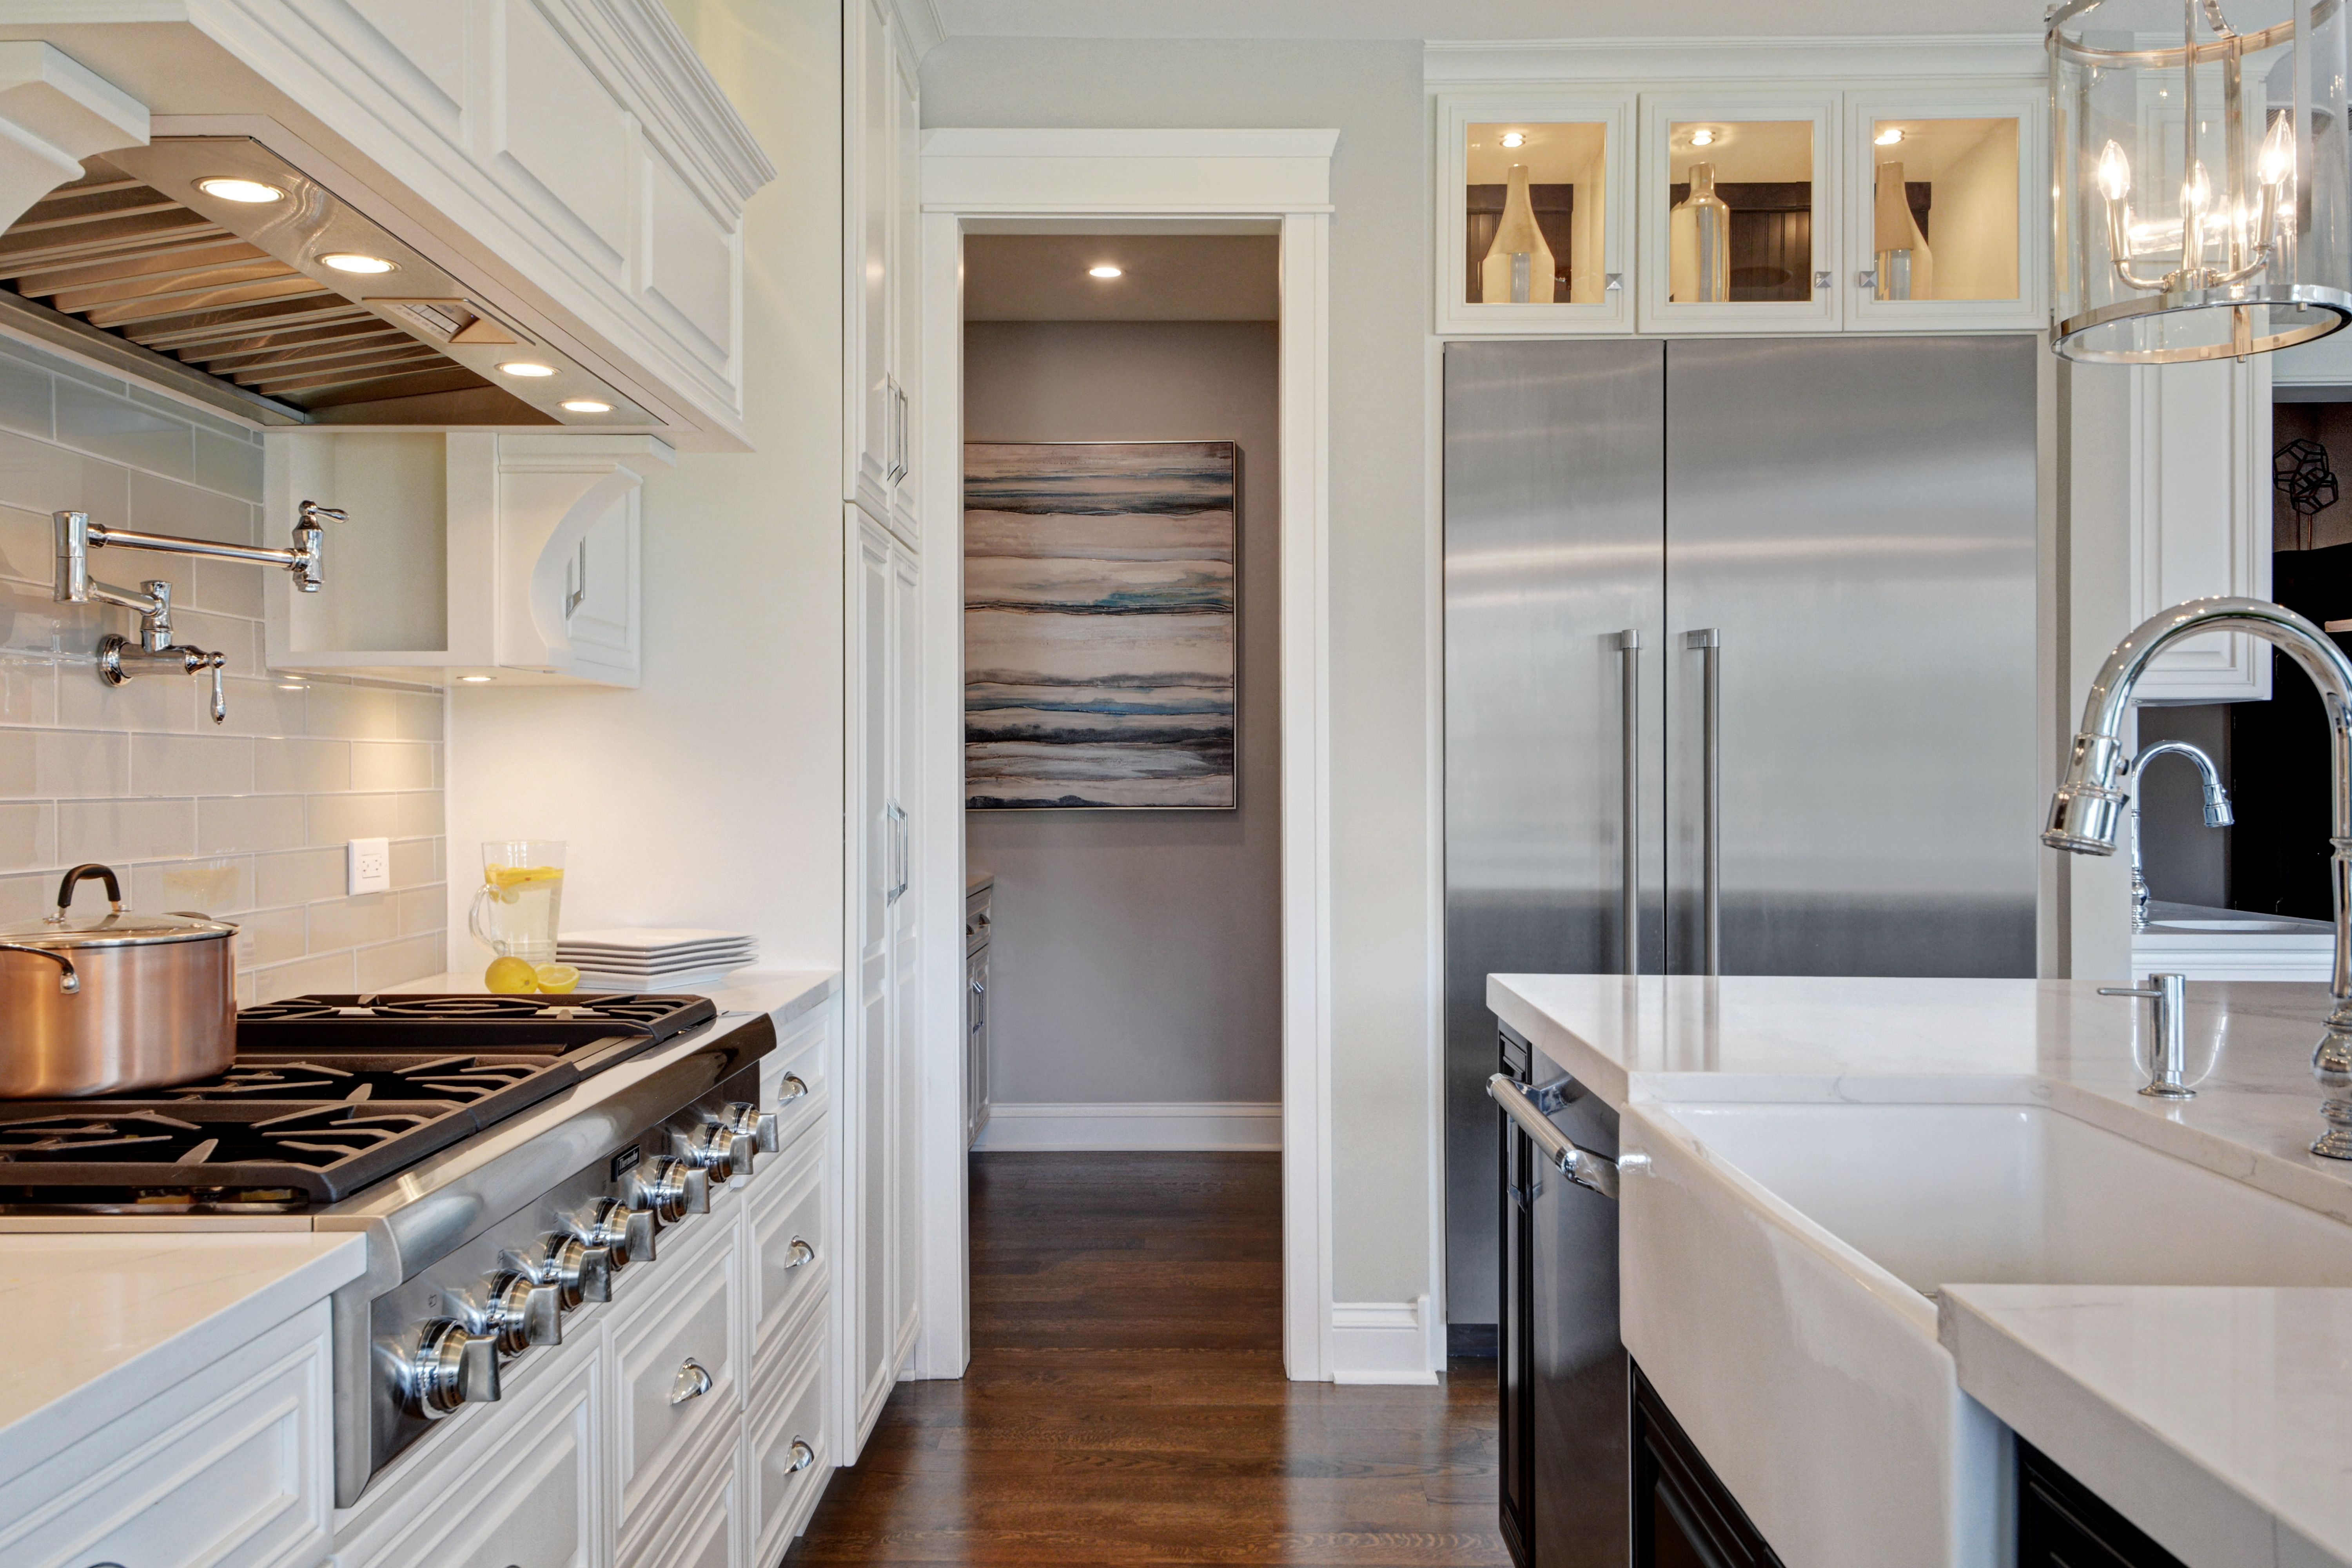 Transitional Kitchen Transitional Kitchen Interior Design Projects Kitchen Cabinets